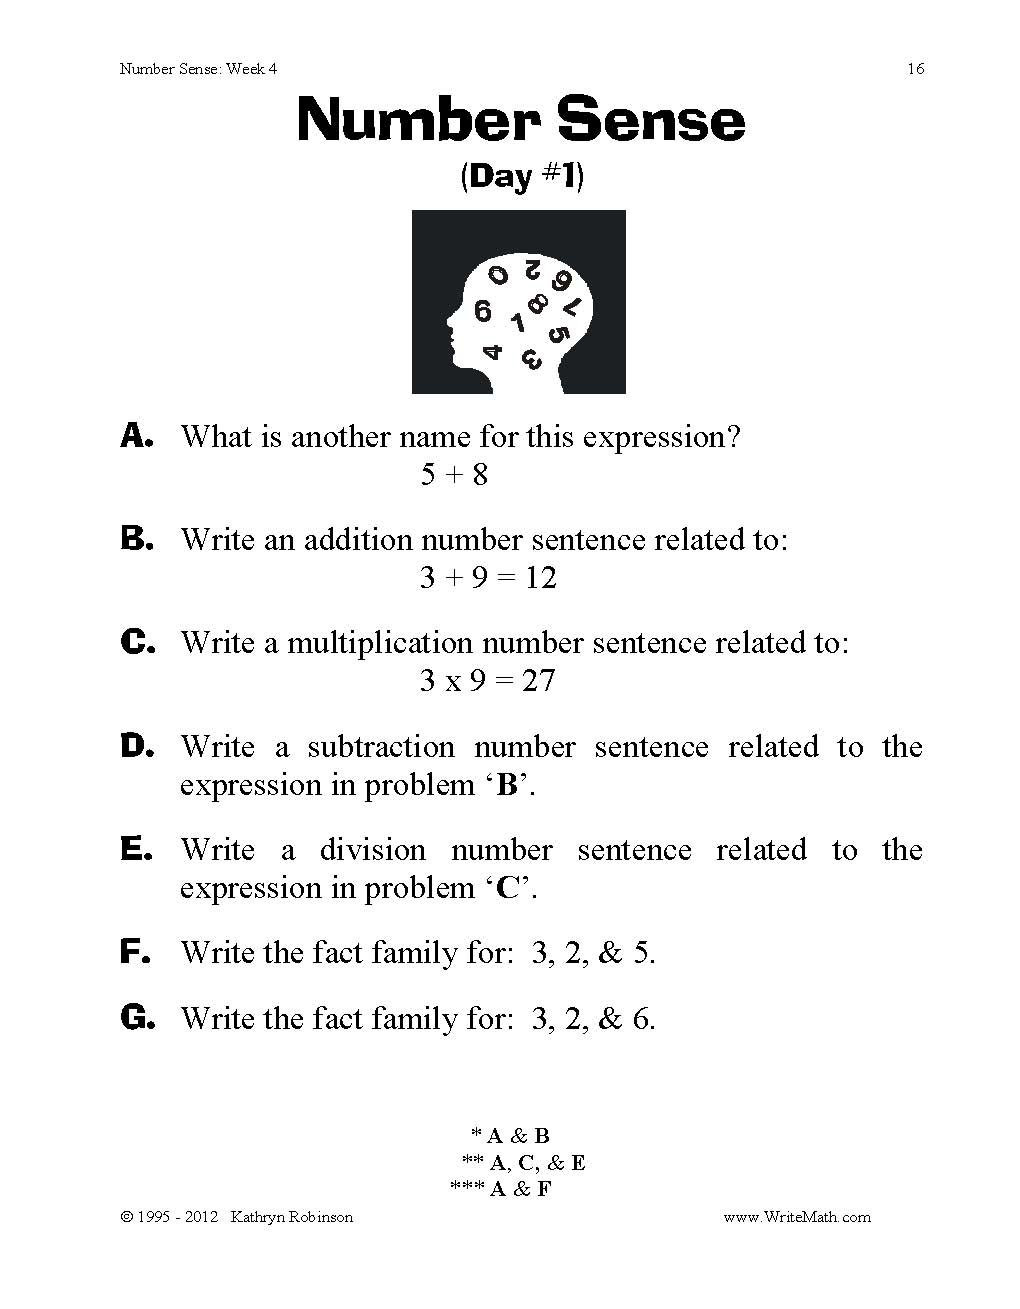 Probability Worksheet 5th Grade Math Kg2 Train Timetable Worksheets Number Sense Worksheets